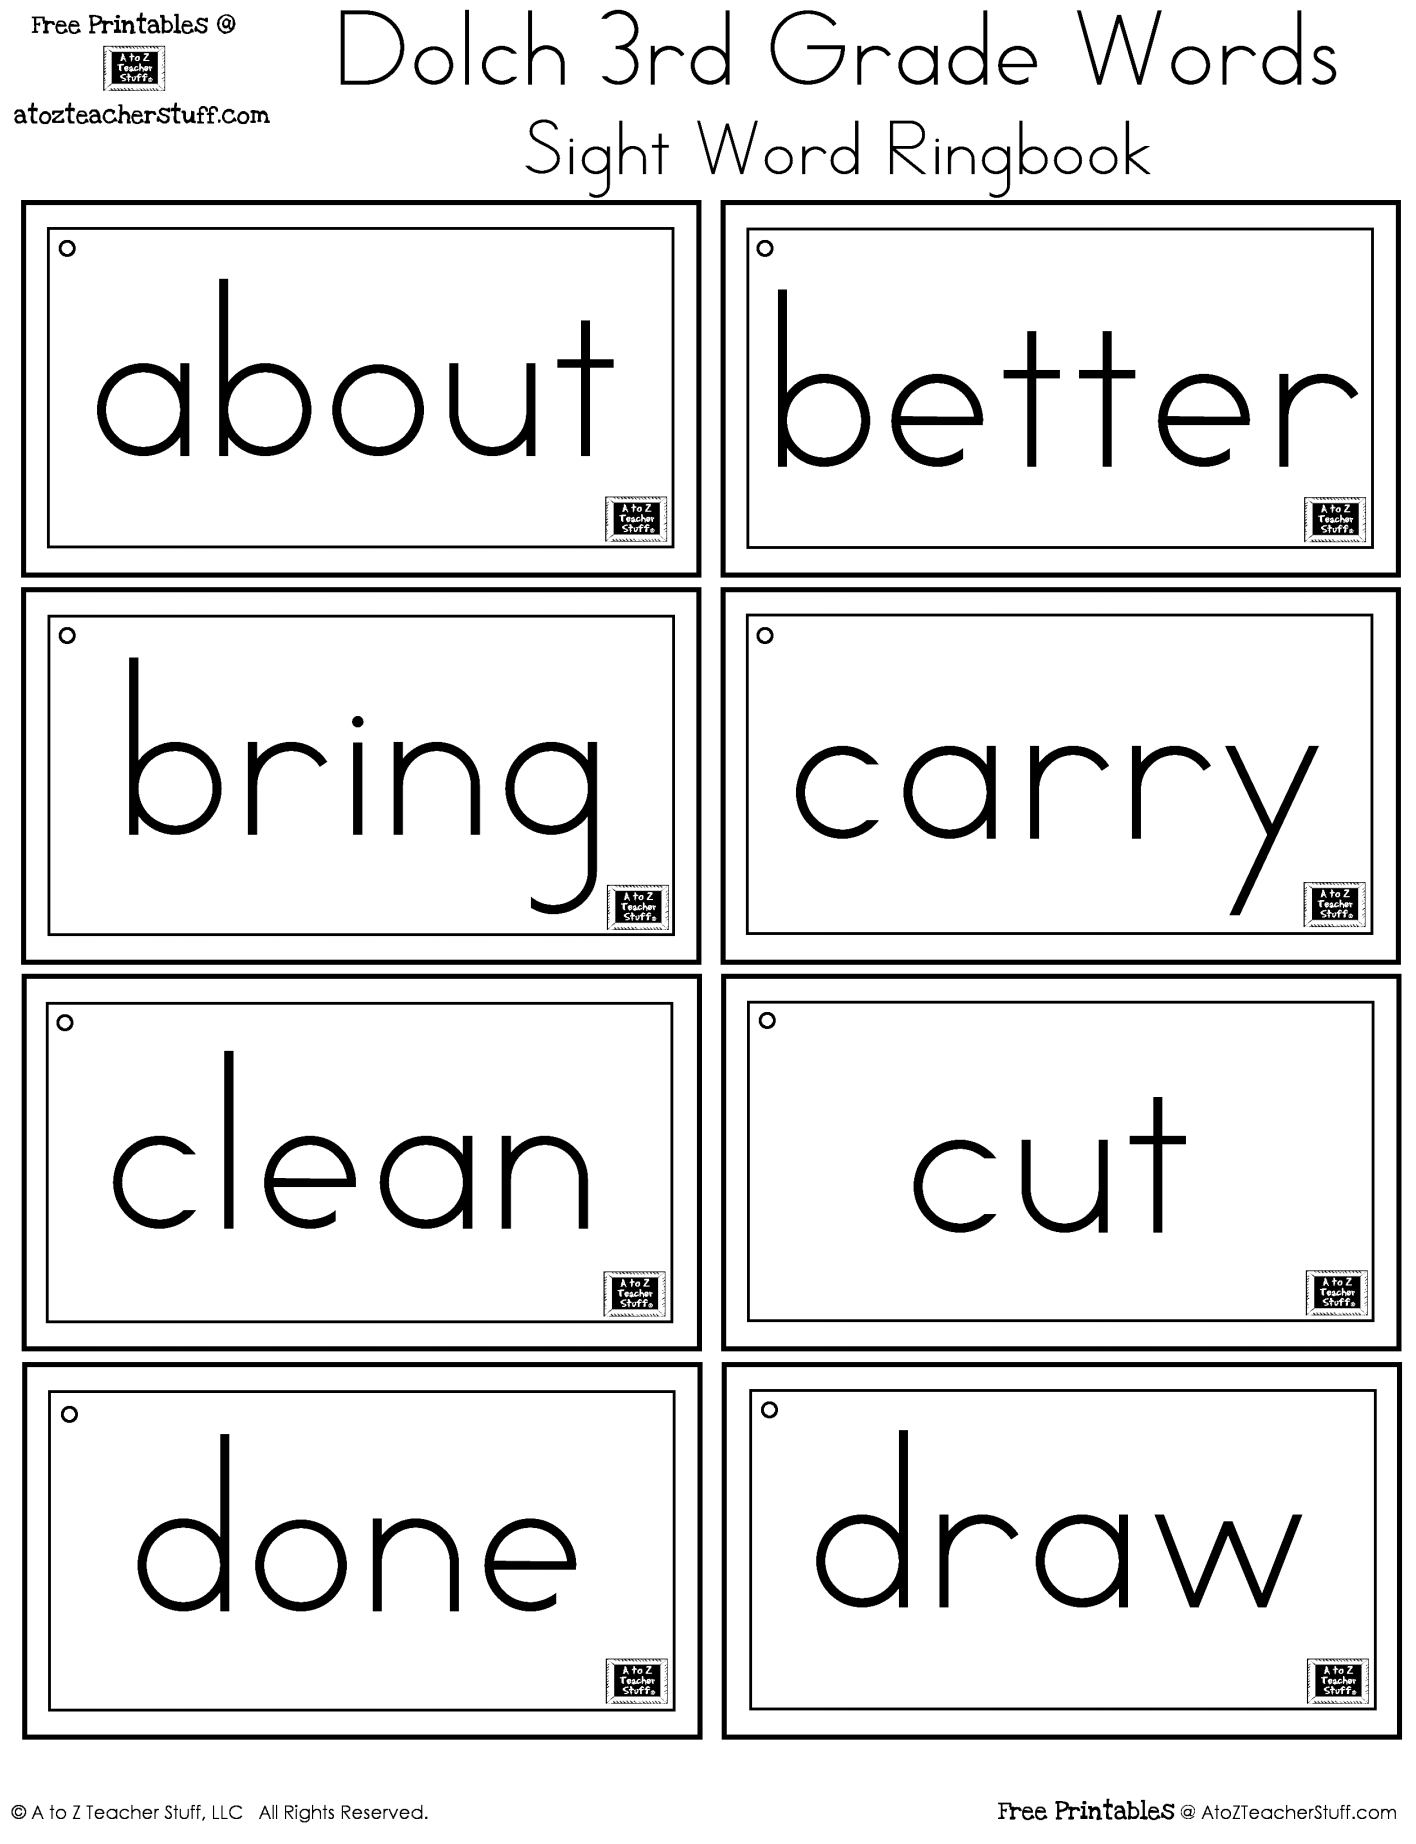 small resolution of 3rd Grade Dolch Words Sight Word Ringbook   First grade sight words